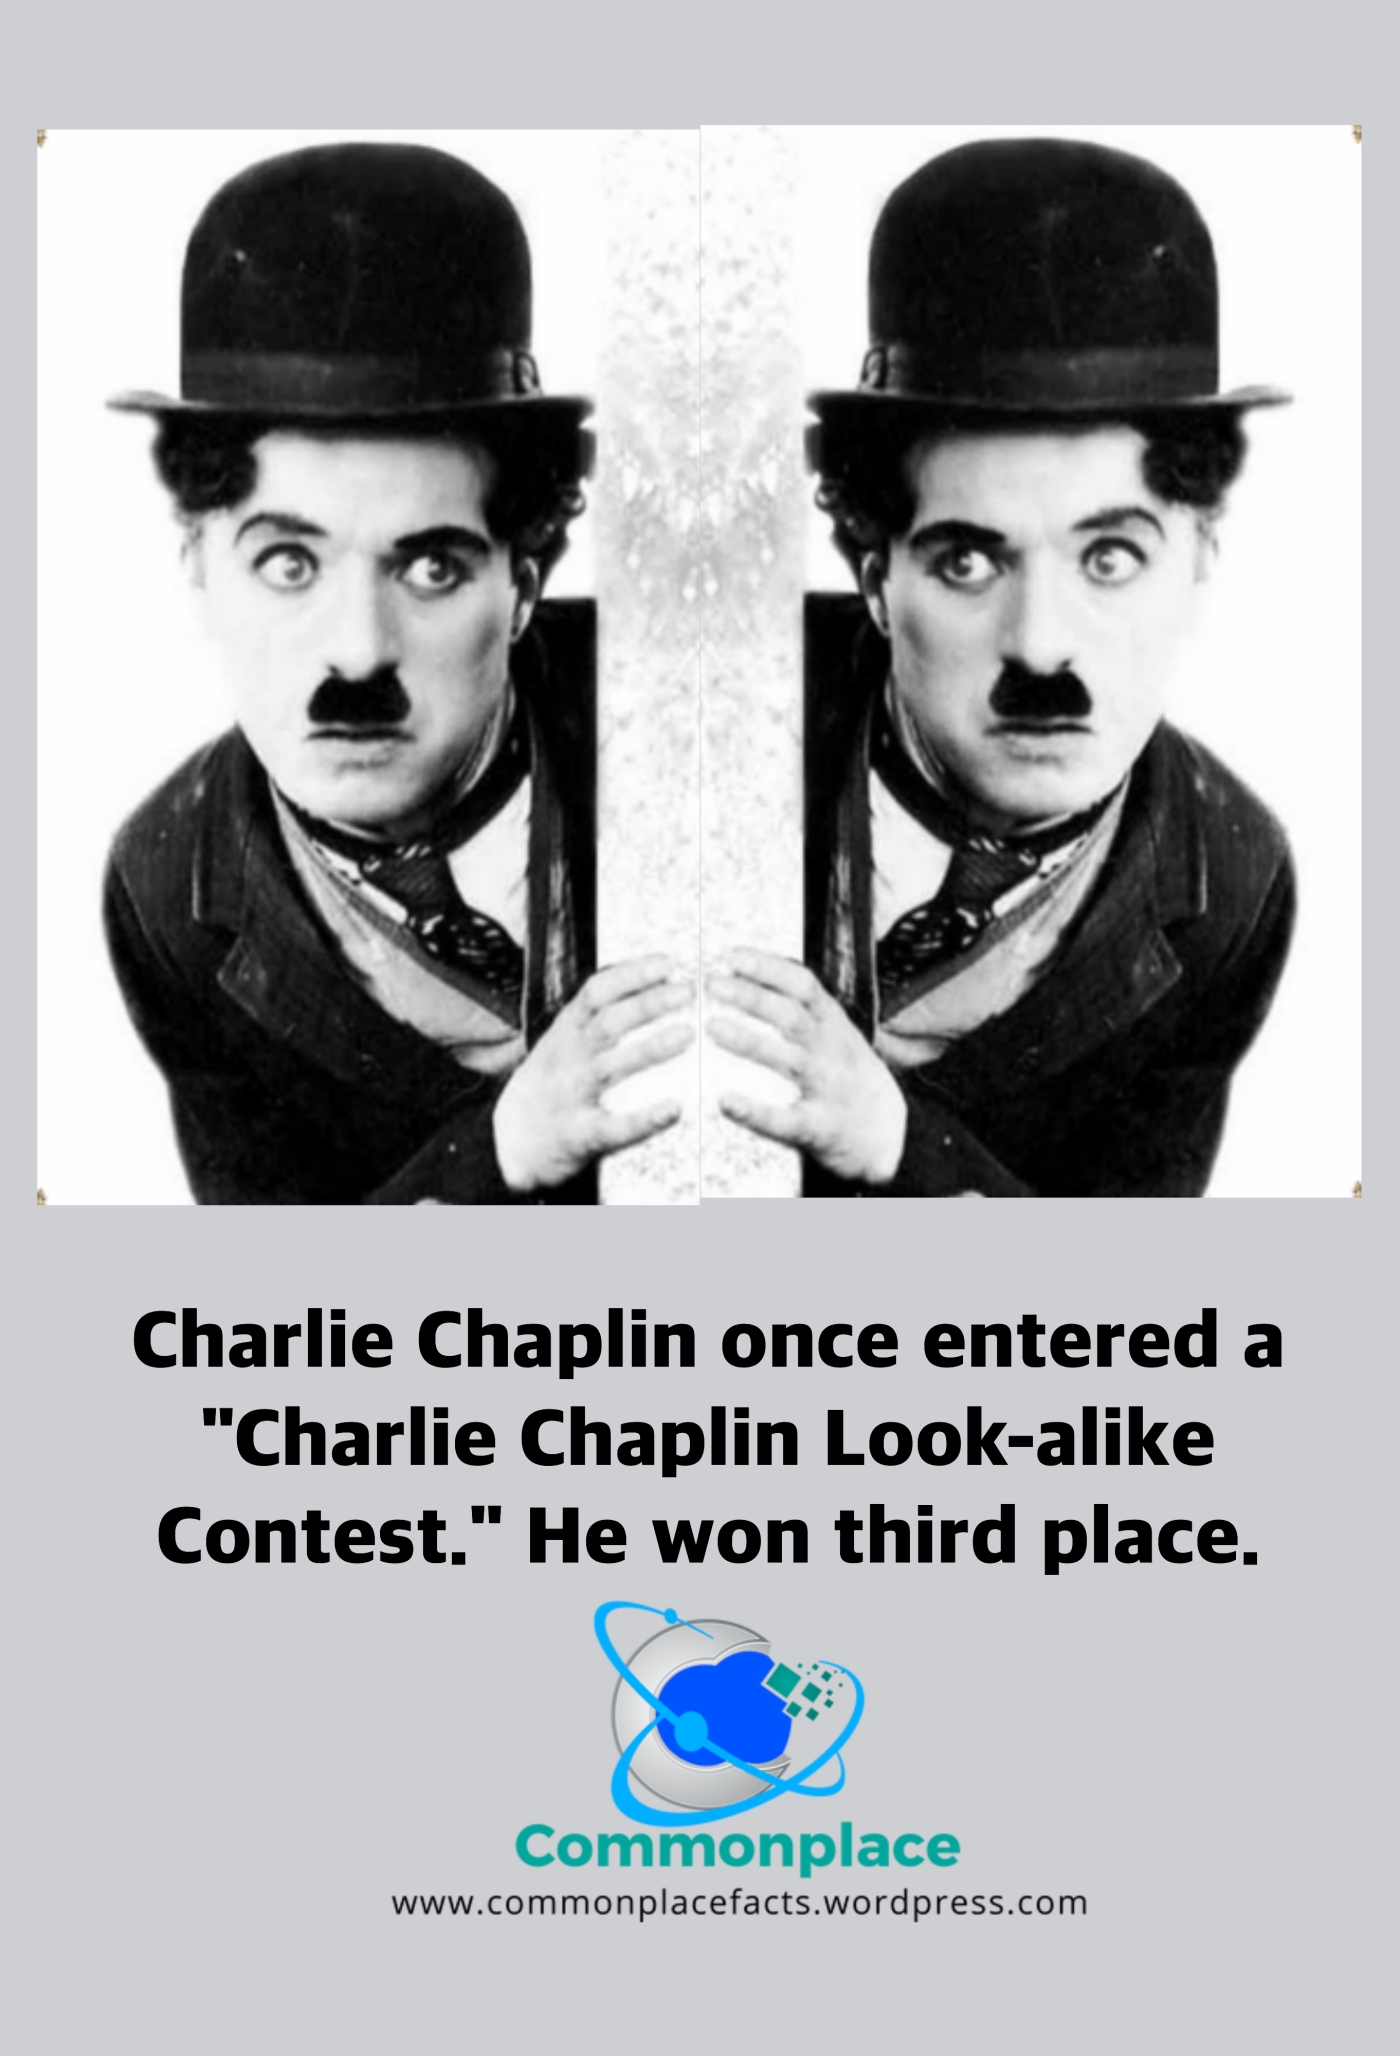 #charliechaplin #contests #funfacts